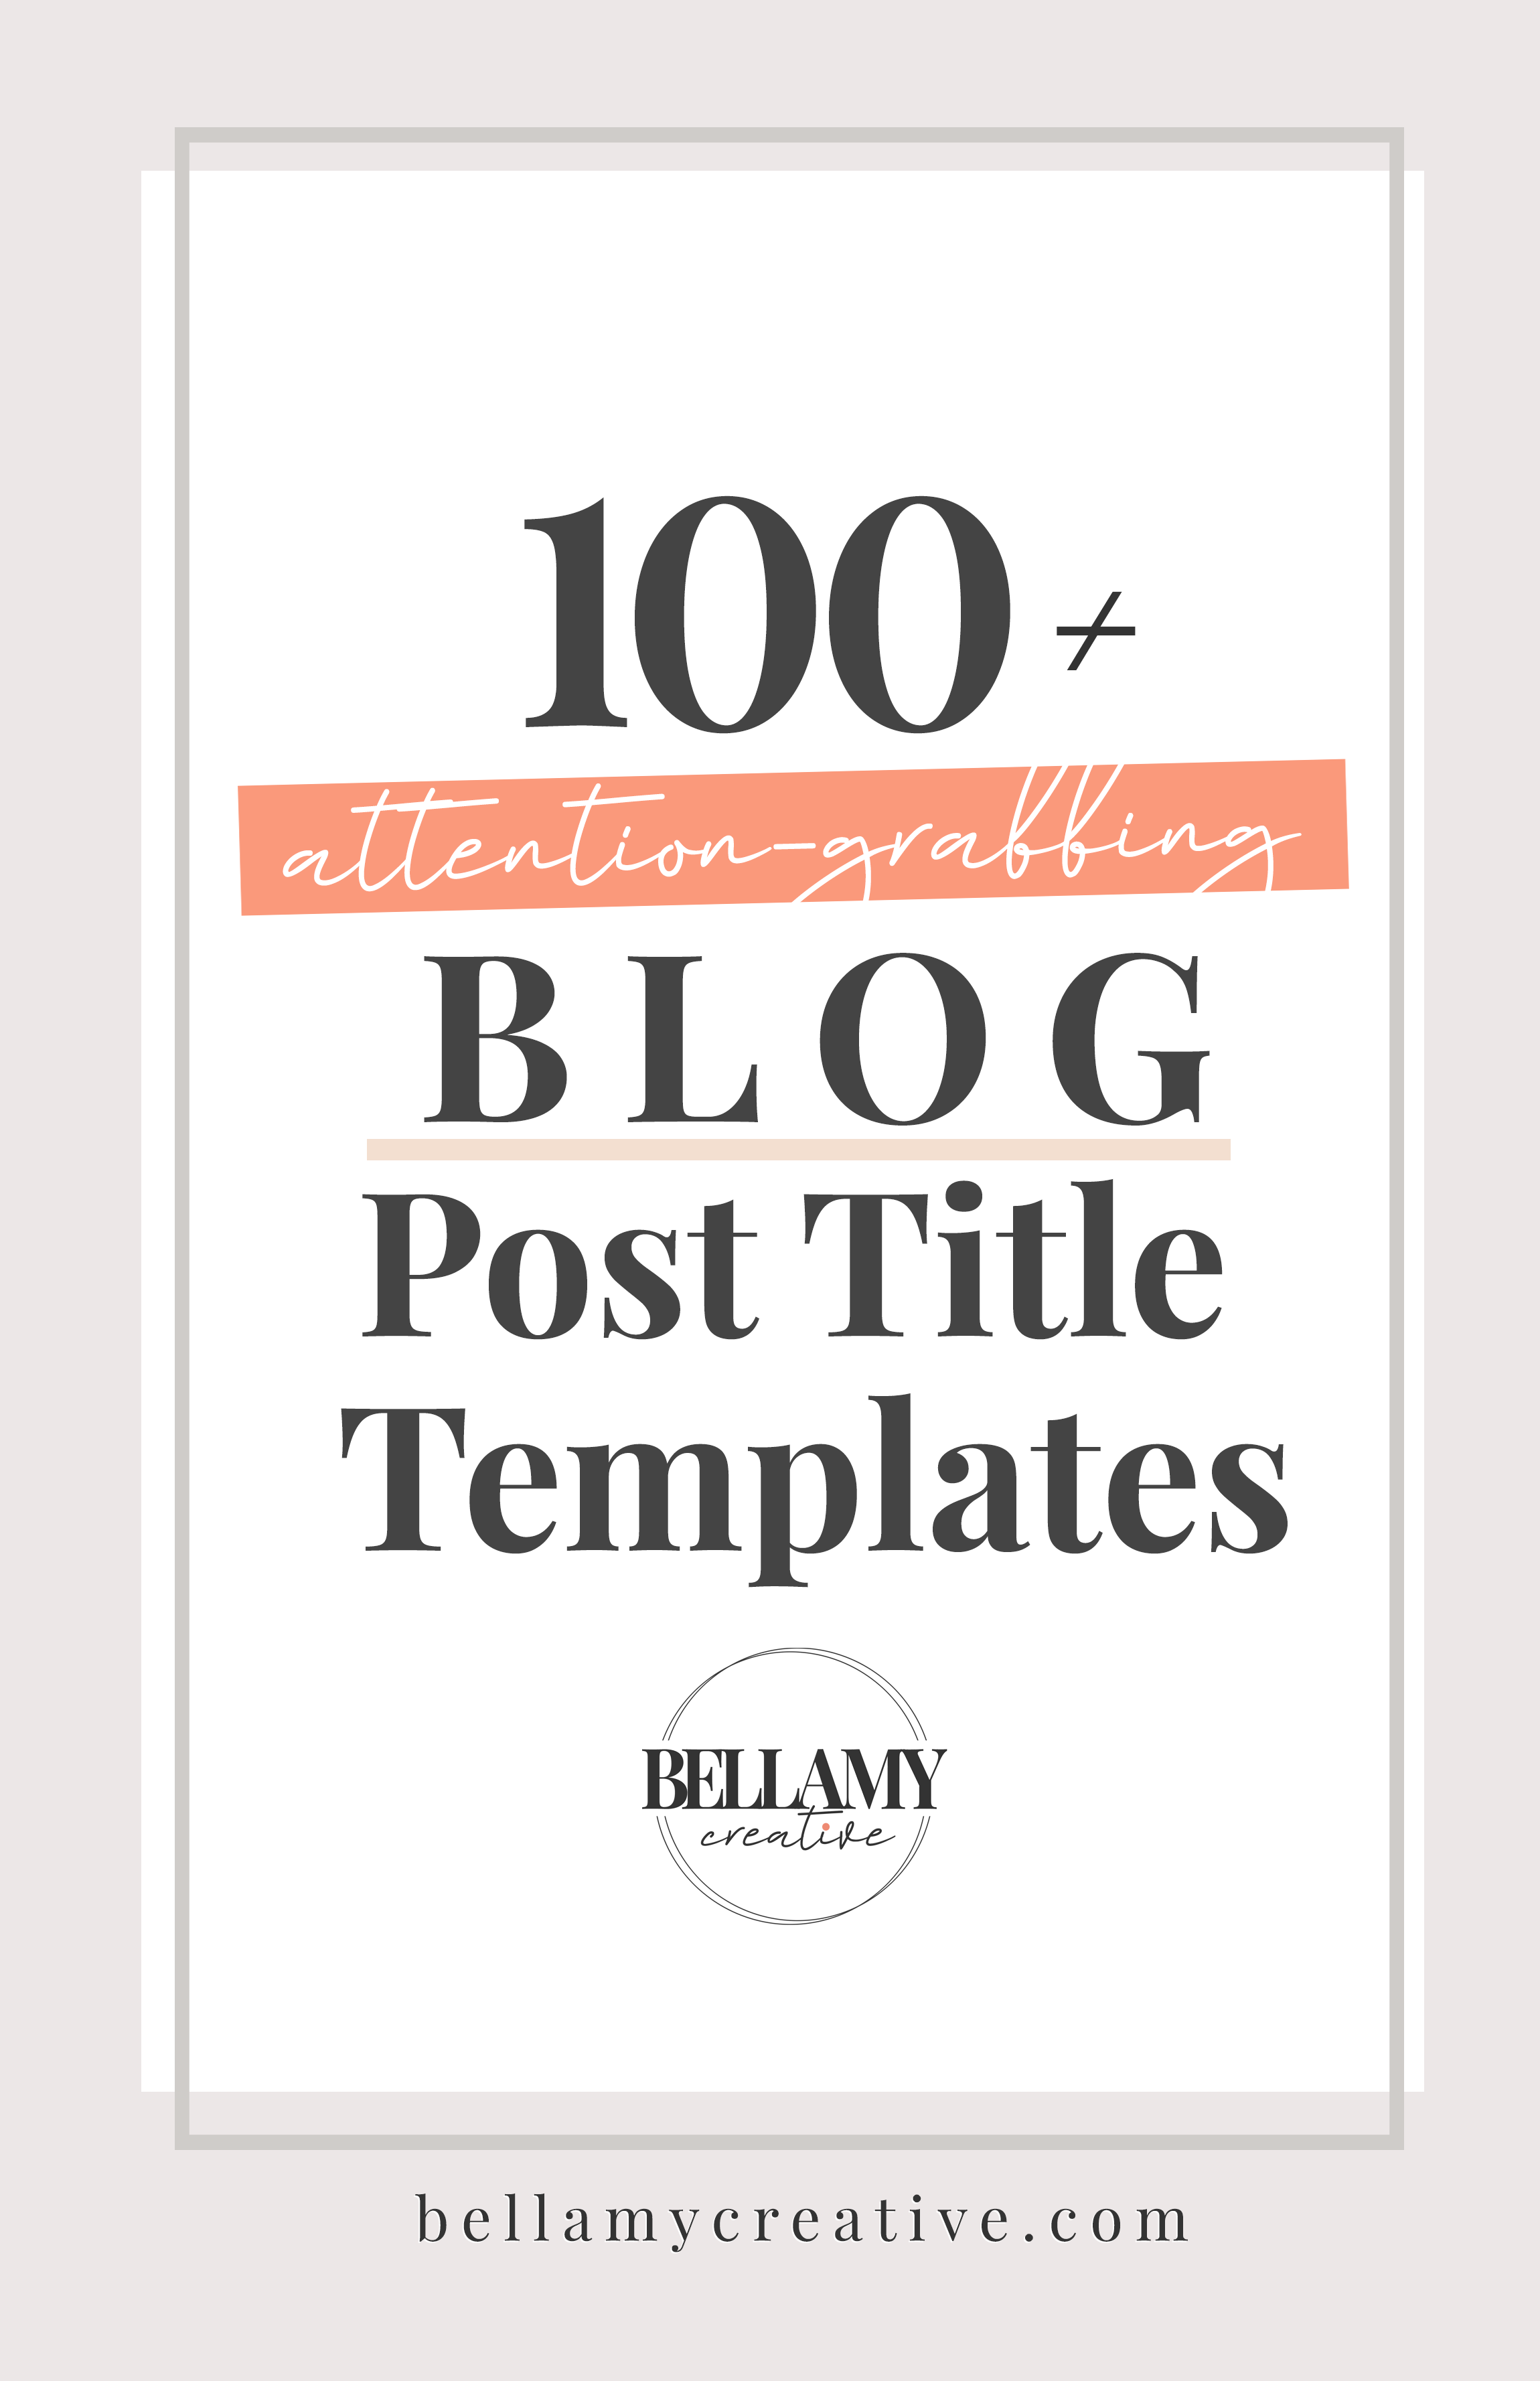 100+ Clever Blog Post Title Templates That Work at BellamyCreative.com